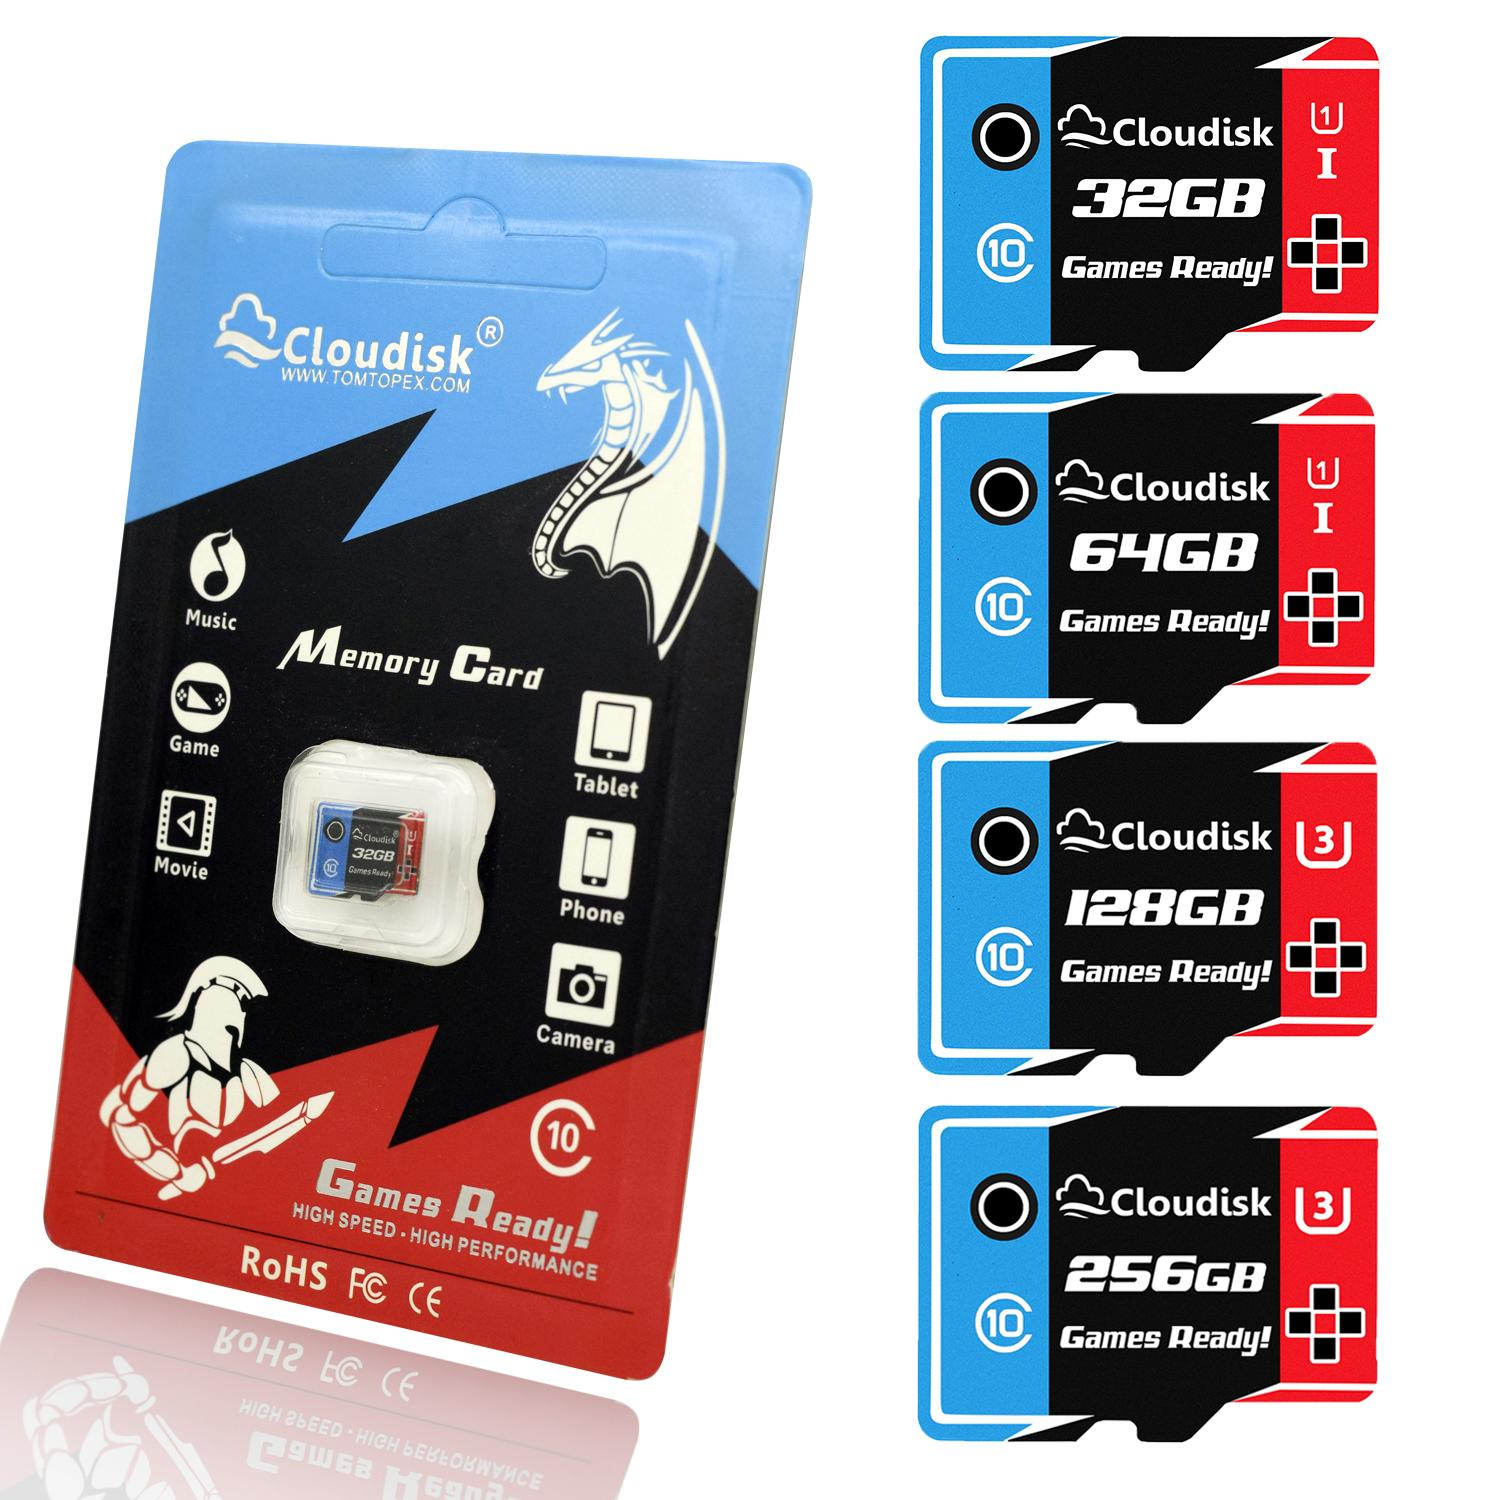 c311bfb70c0 Cloudisk Games Ready Microsd Memory Cards 256GB 128GB 64GB 32GB Micro Sd  Card U3 U1 Class10 High Speed 5 Year Warranty Memory Card Shop Memory Card  Shop ...